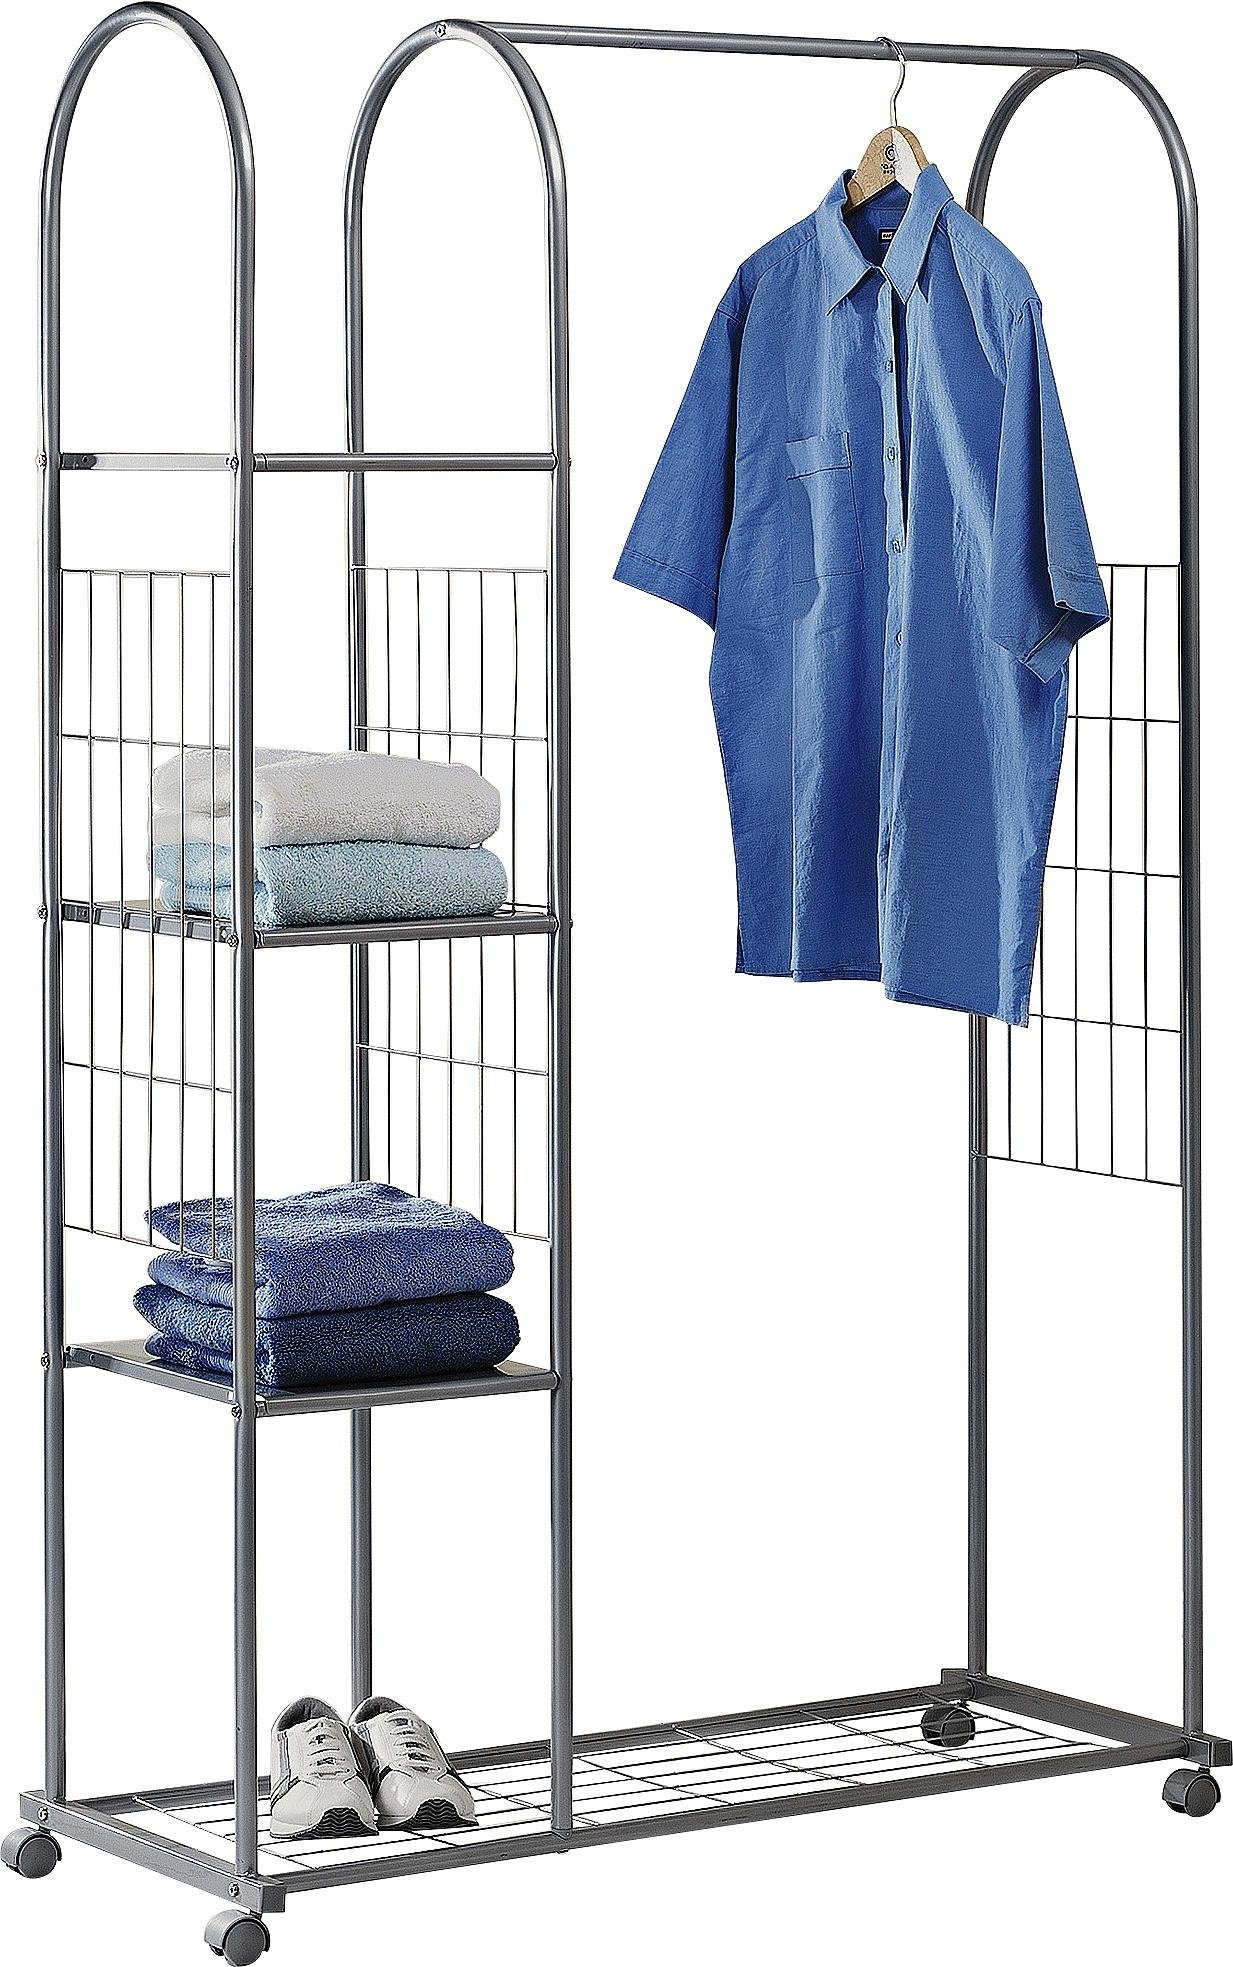 Image of HOME Clothes Rail with Shelves - Silver